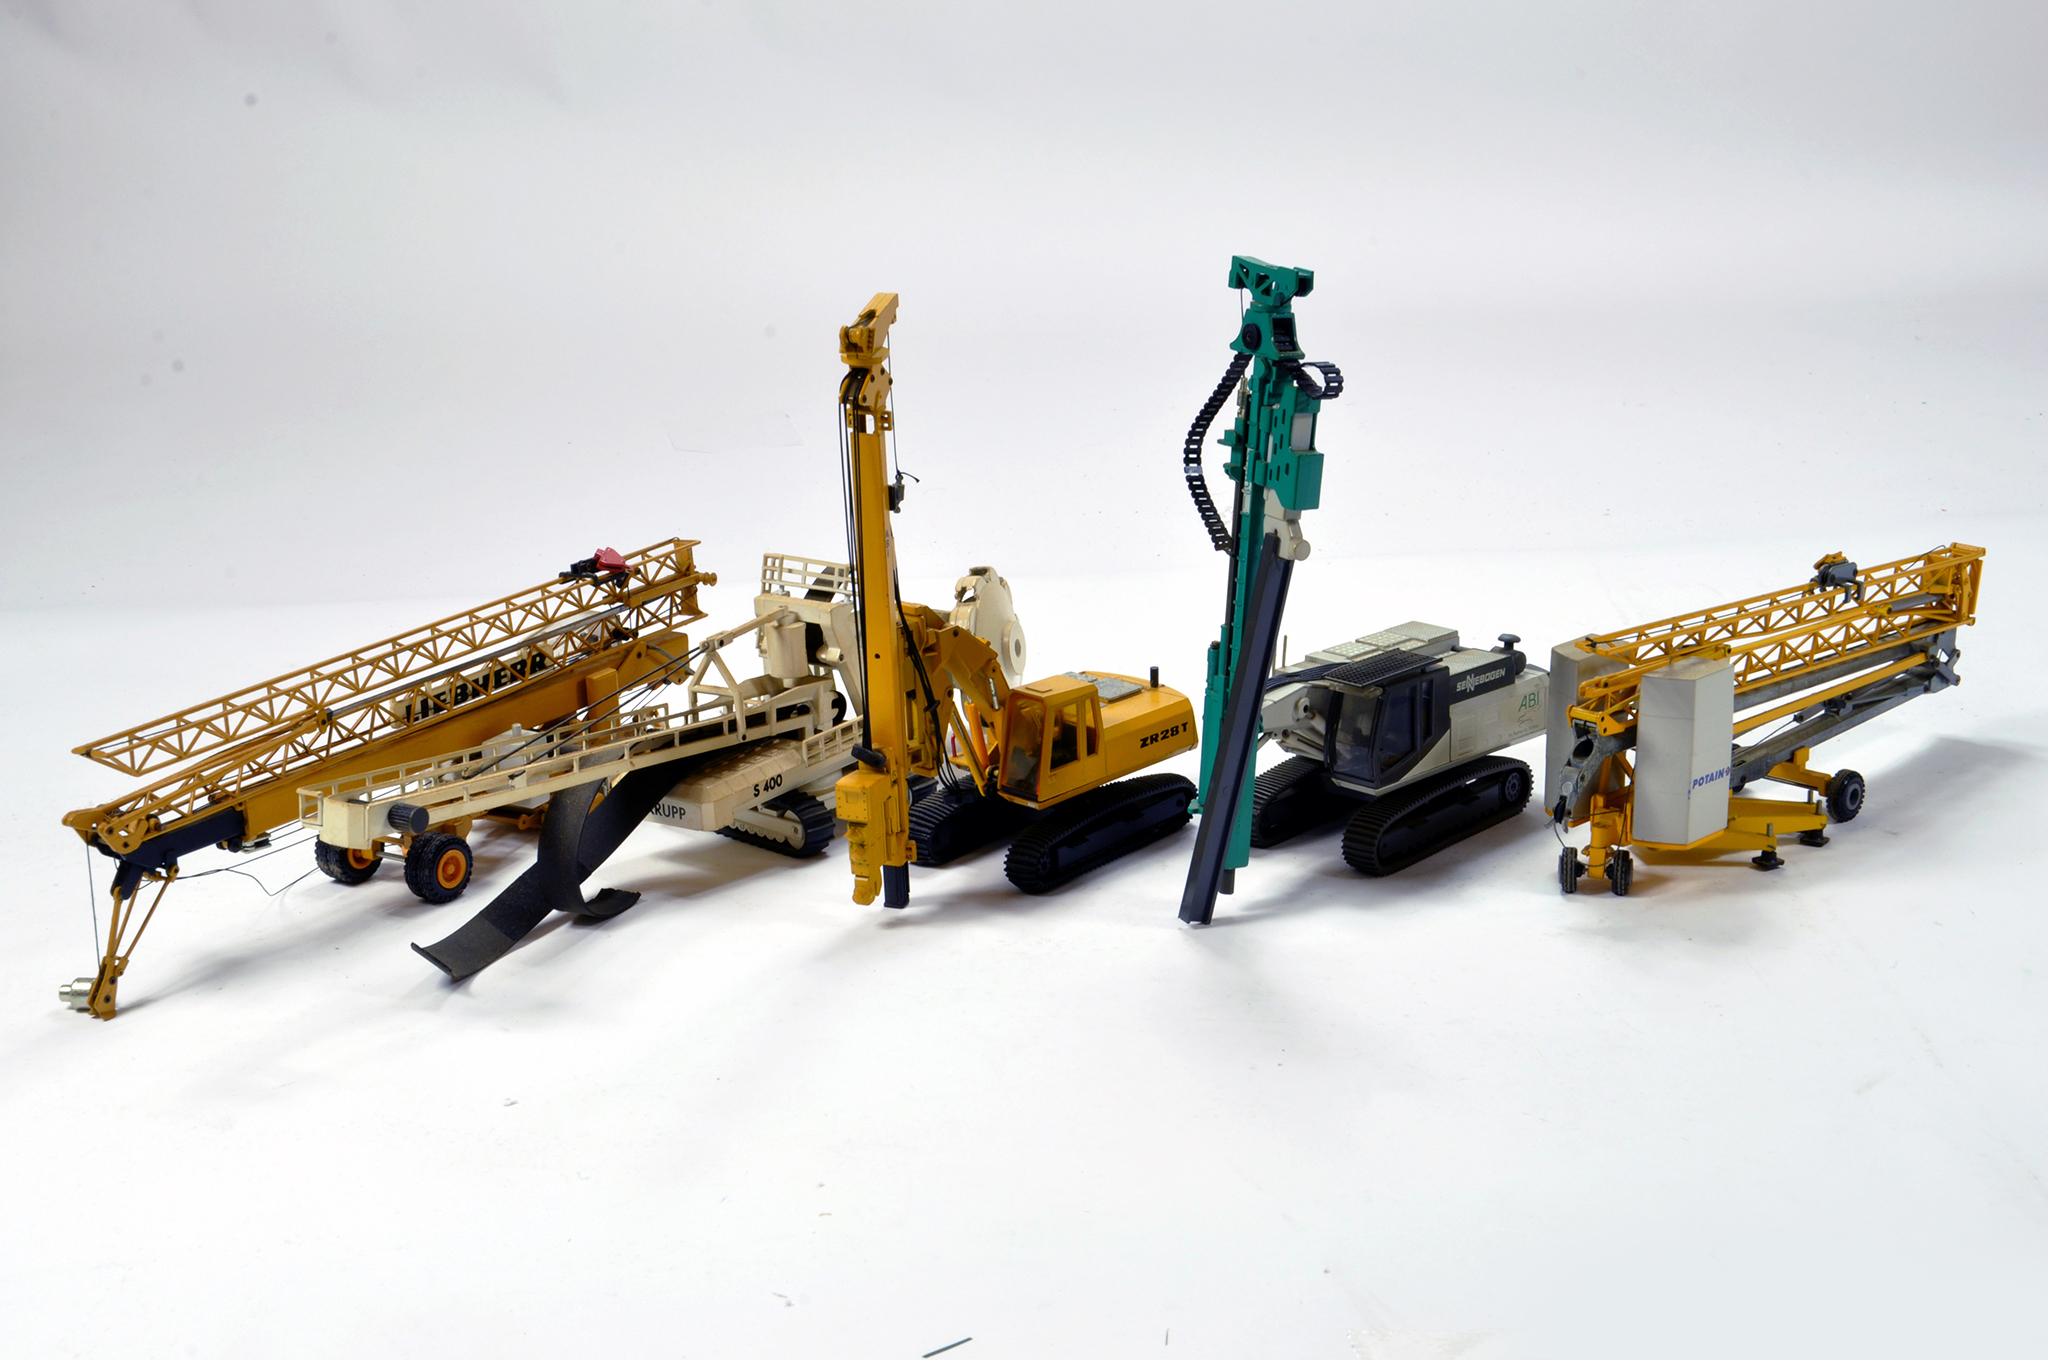 Lot 359 - Assortment of mainly 1/50 construction diecast issues from various makers. Conrad, NZG etc.